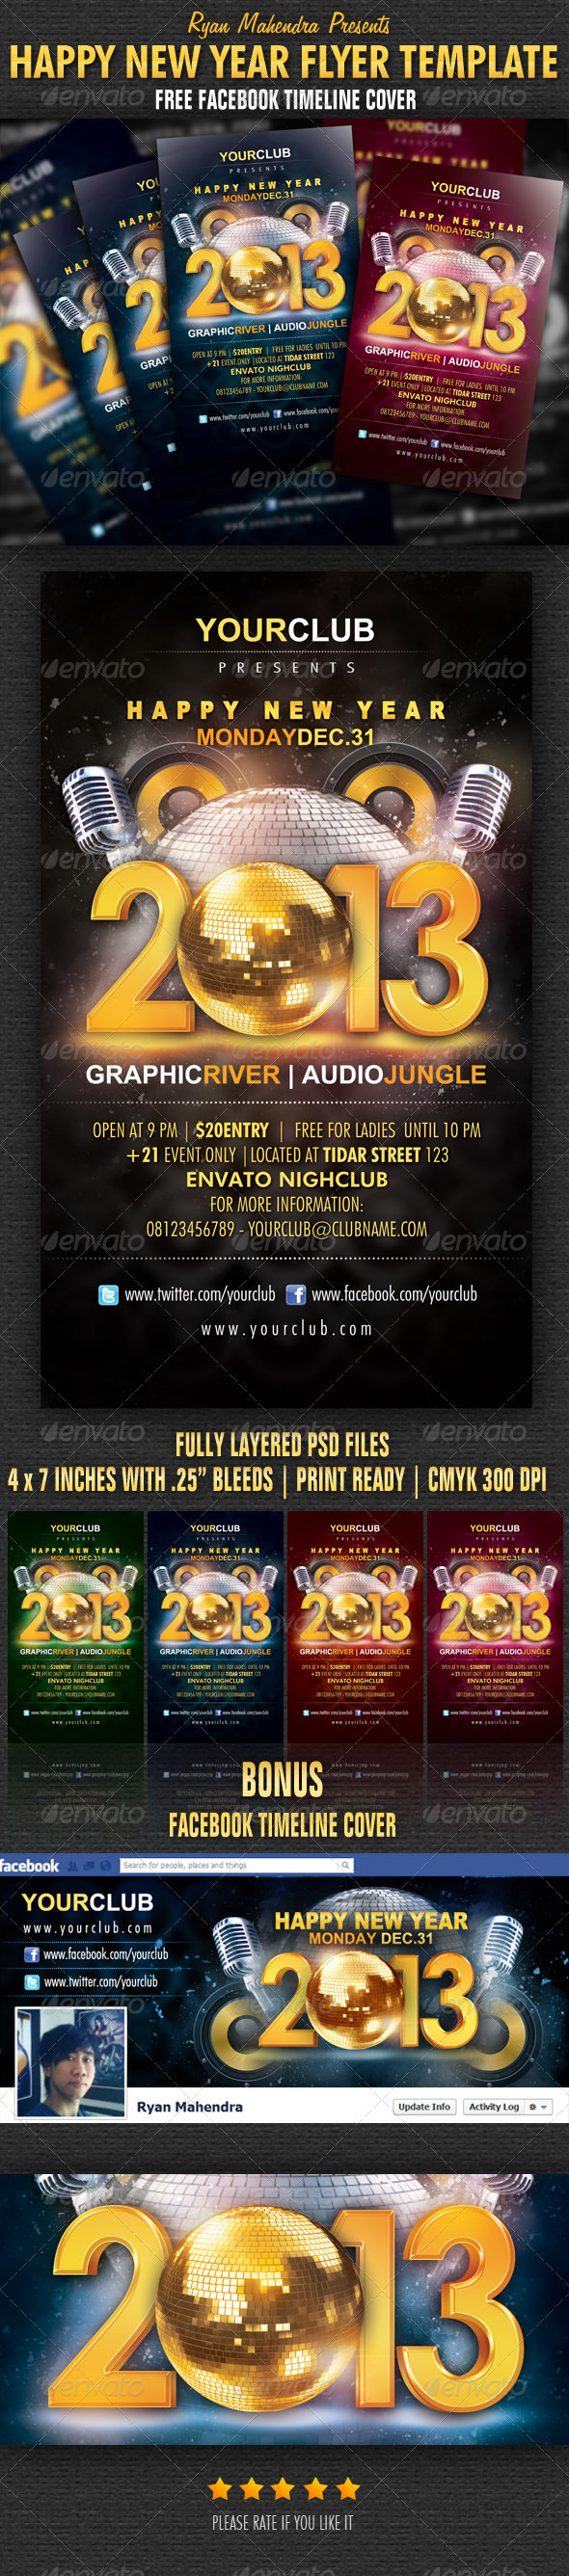 GraphicRiver Happy New Year Flyer Template 3638696